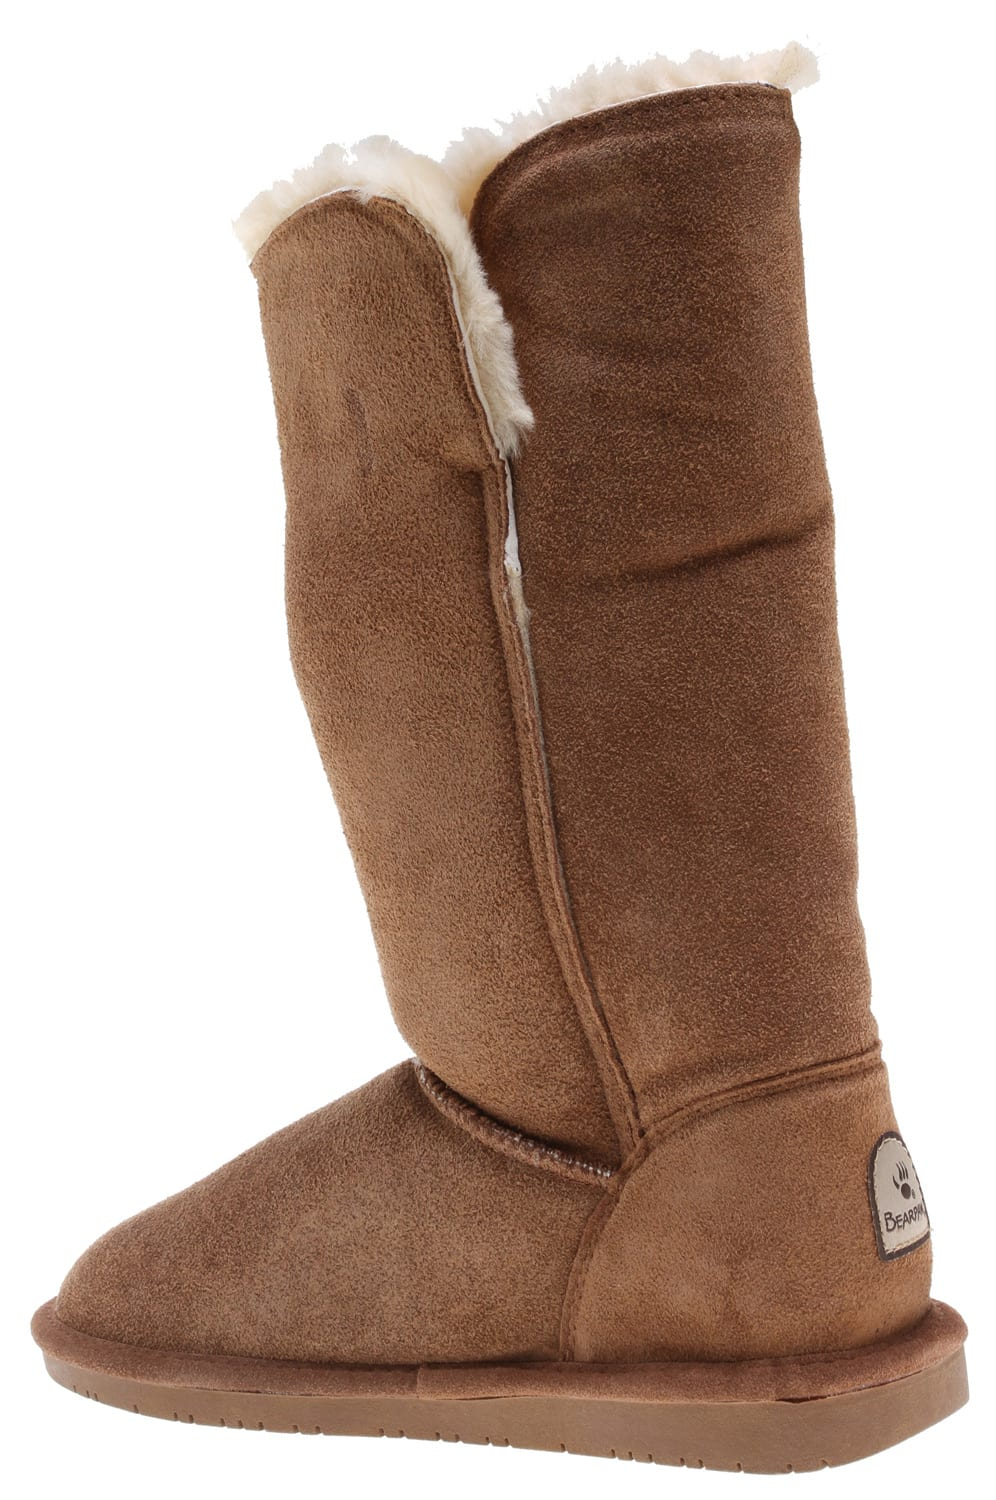 On Sale Bearpaw Lauren Boots Womens Up To 45 Off